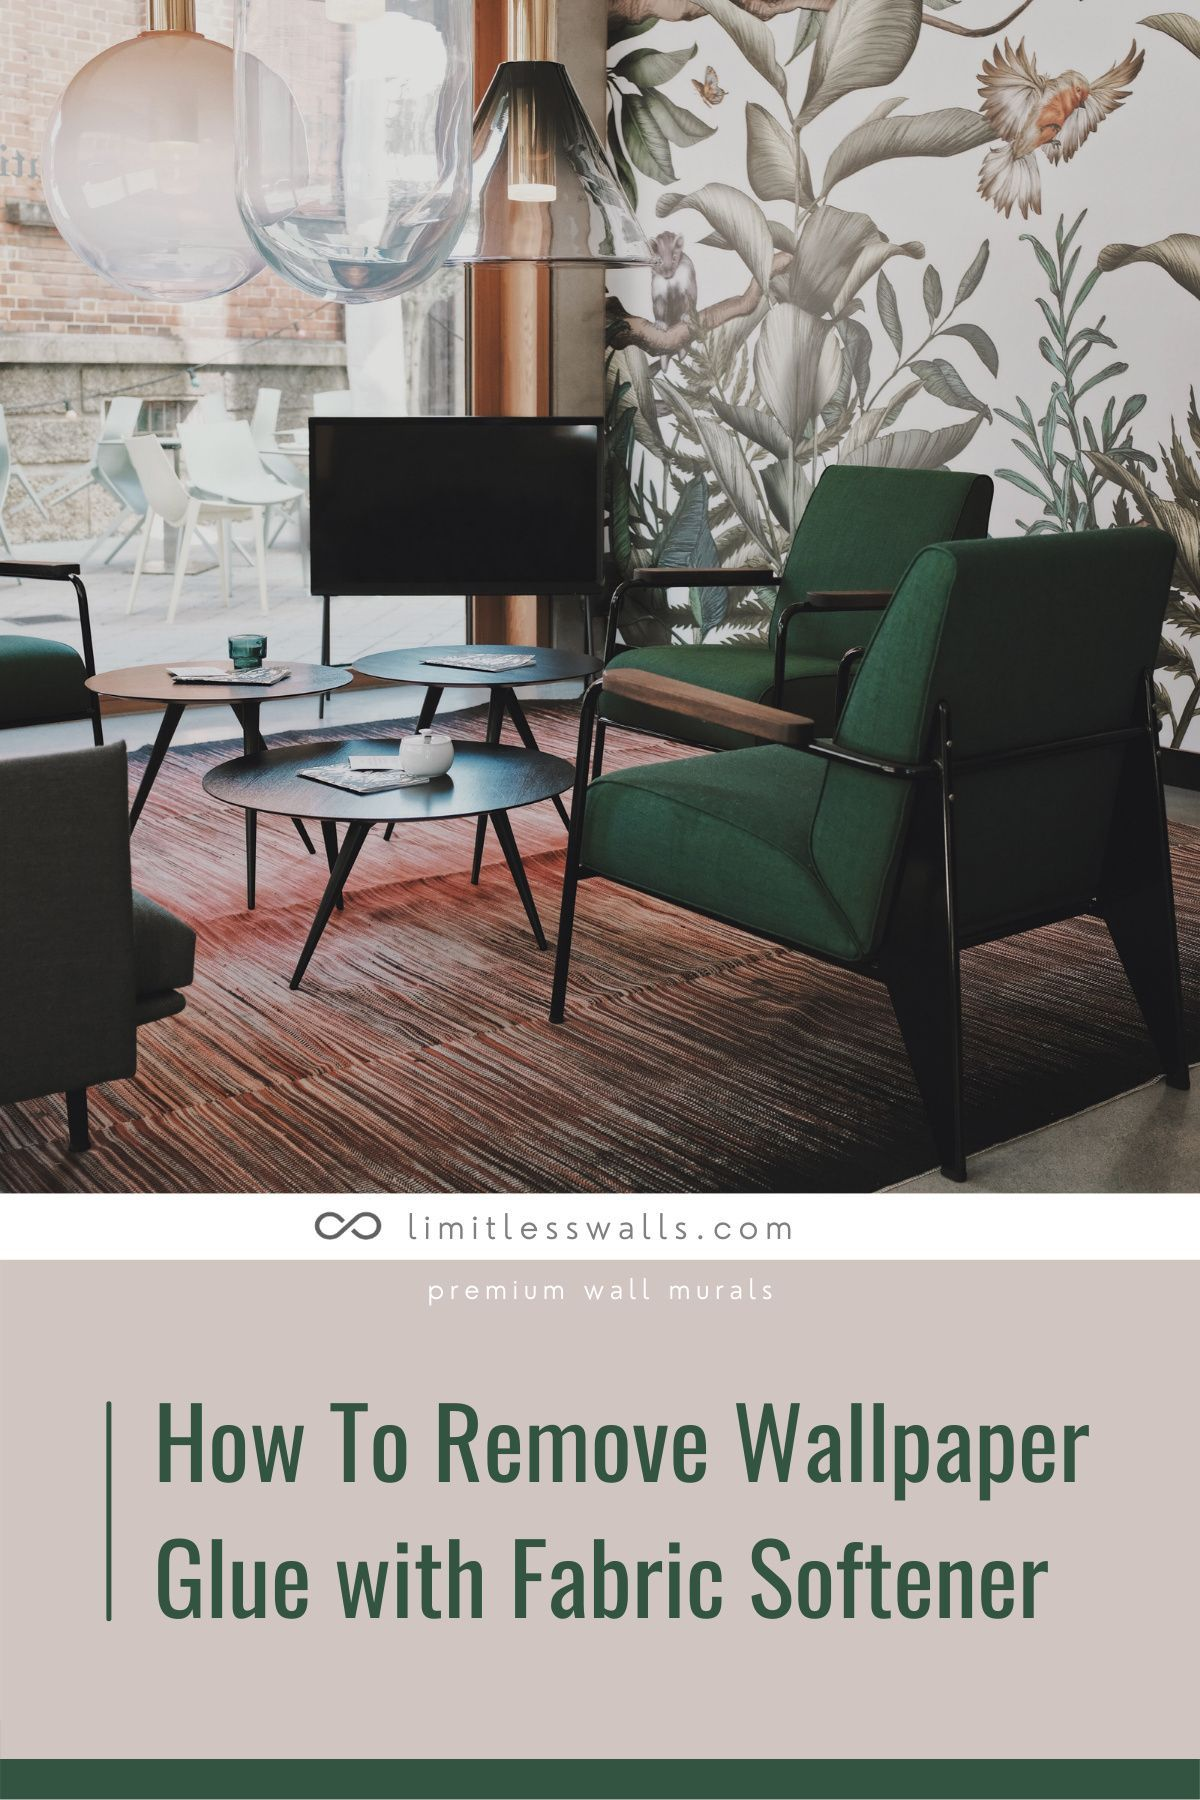 How To Remove Wallpaper Glue from Drywall with Fabric ...